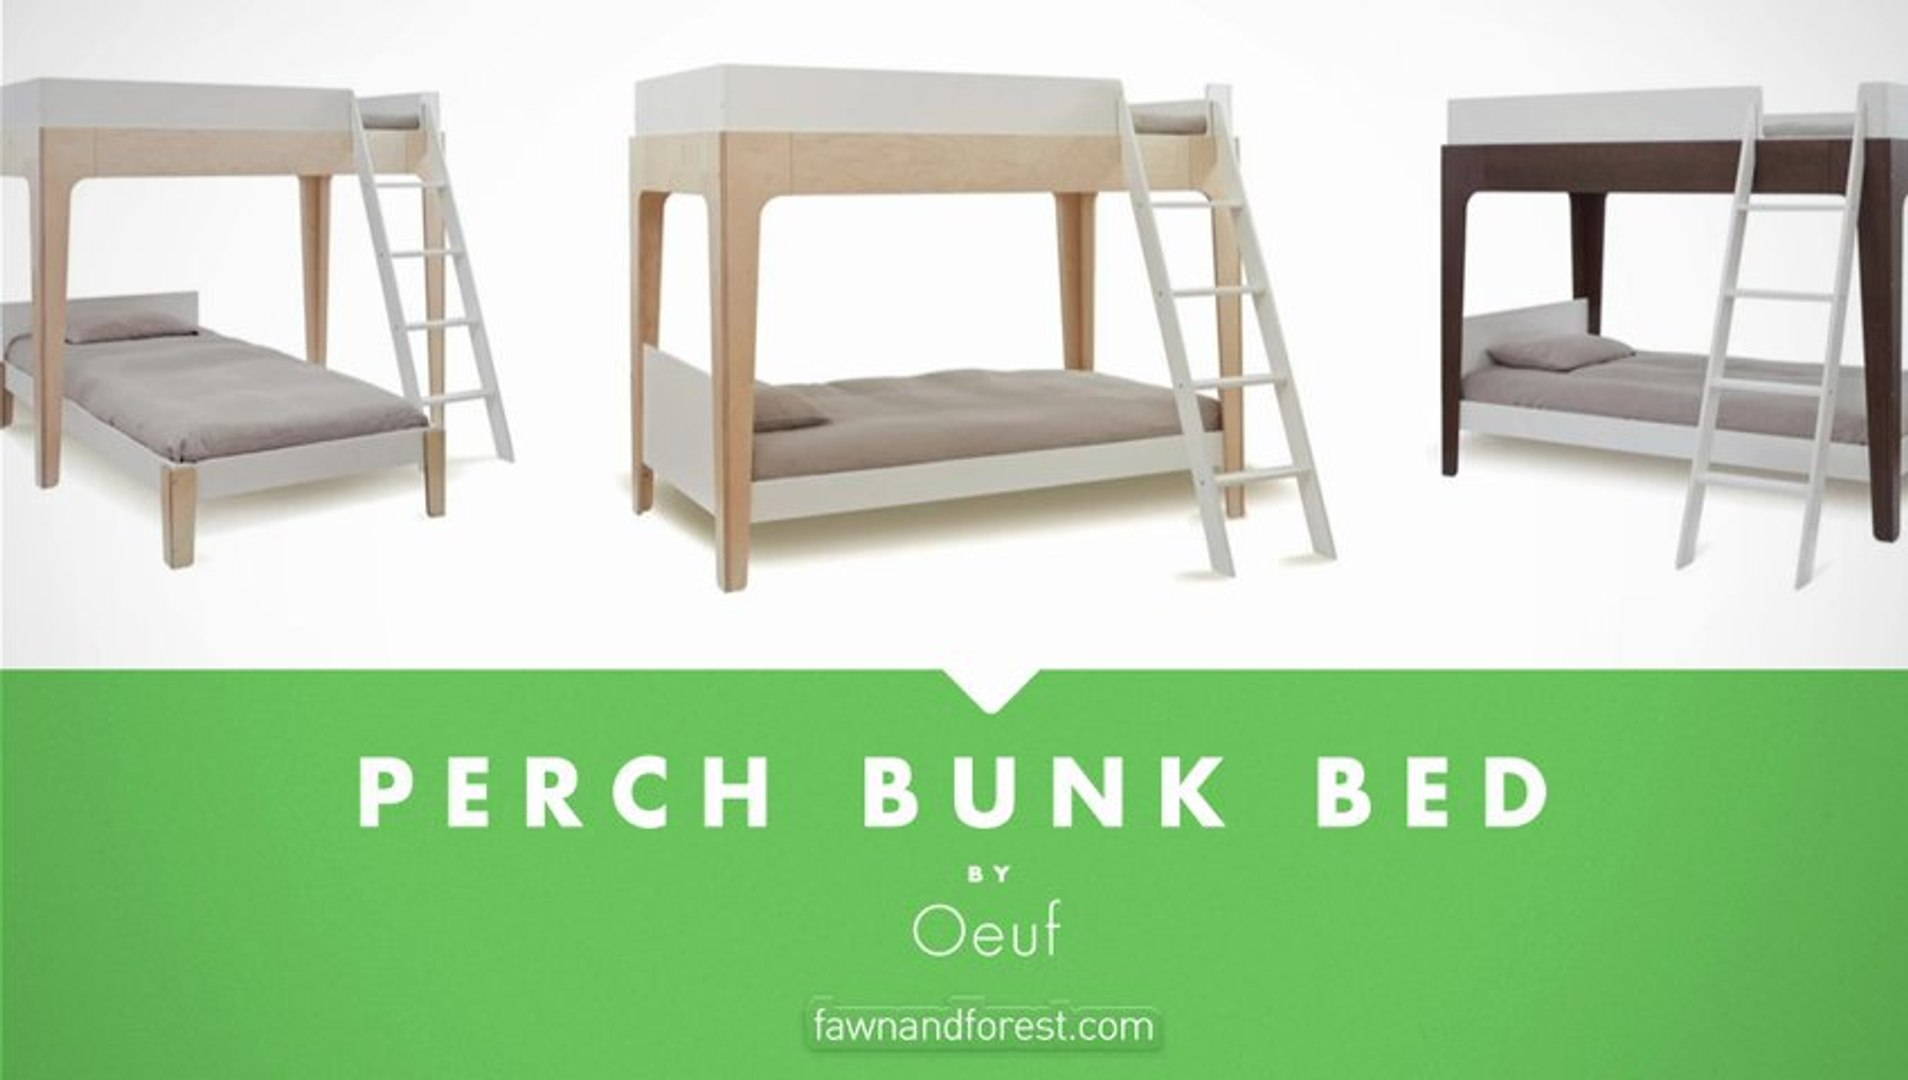 Oeuf Perch Bunk Bed At Fawnandforest Com Video Dailymotion